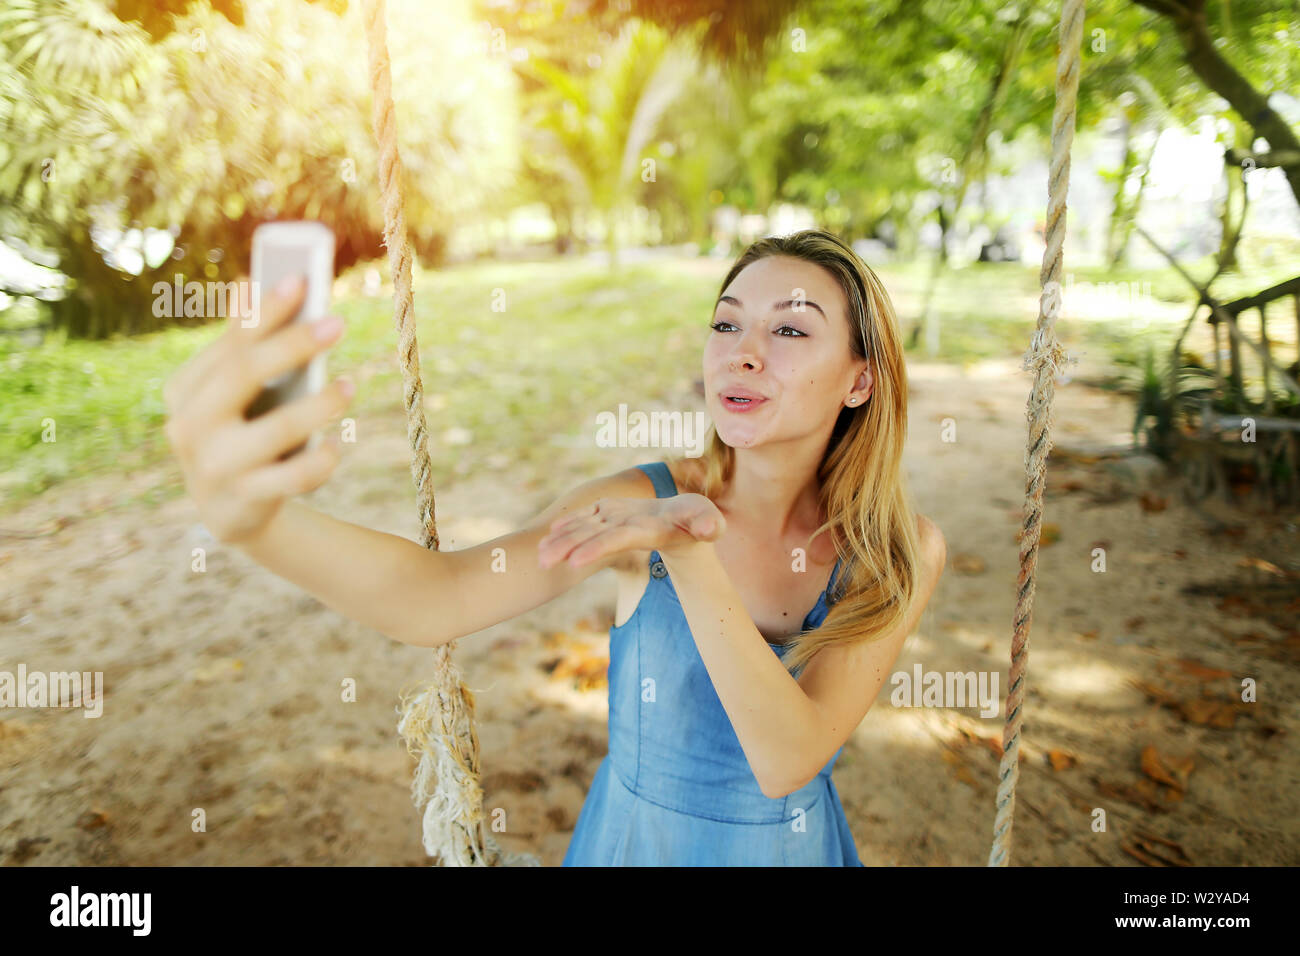 Sunshine photo of young woman making selfie by smartphone and riding swing on sand in Bali. Concept of summer resort in tropical place, modern technol - Stock Image